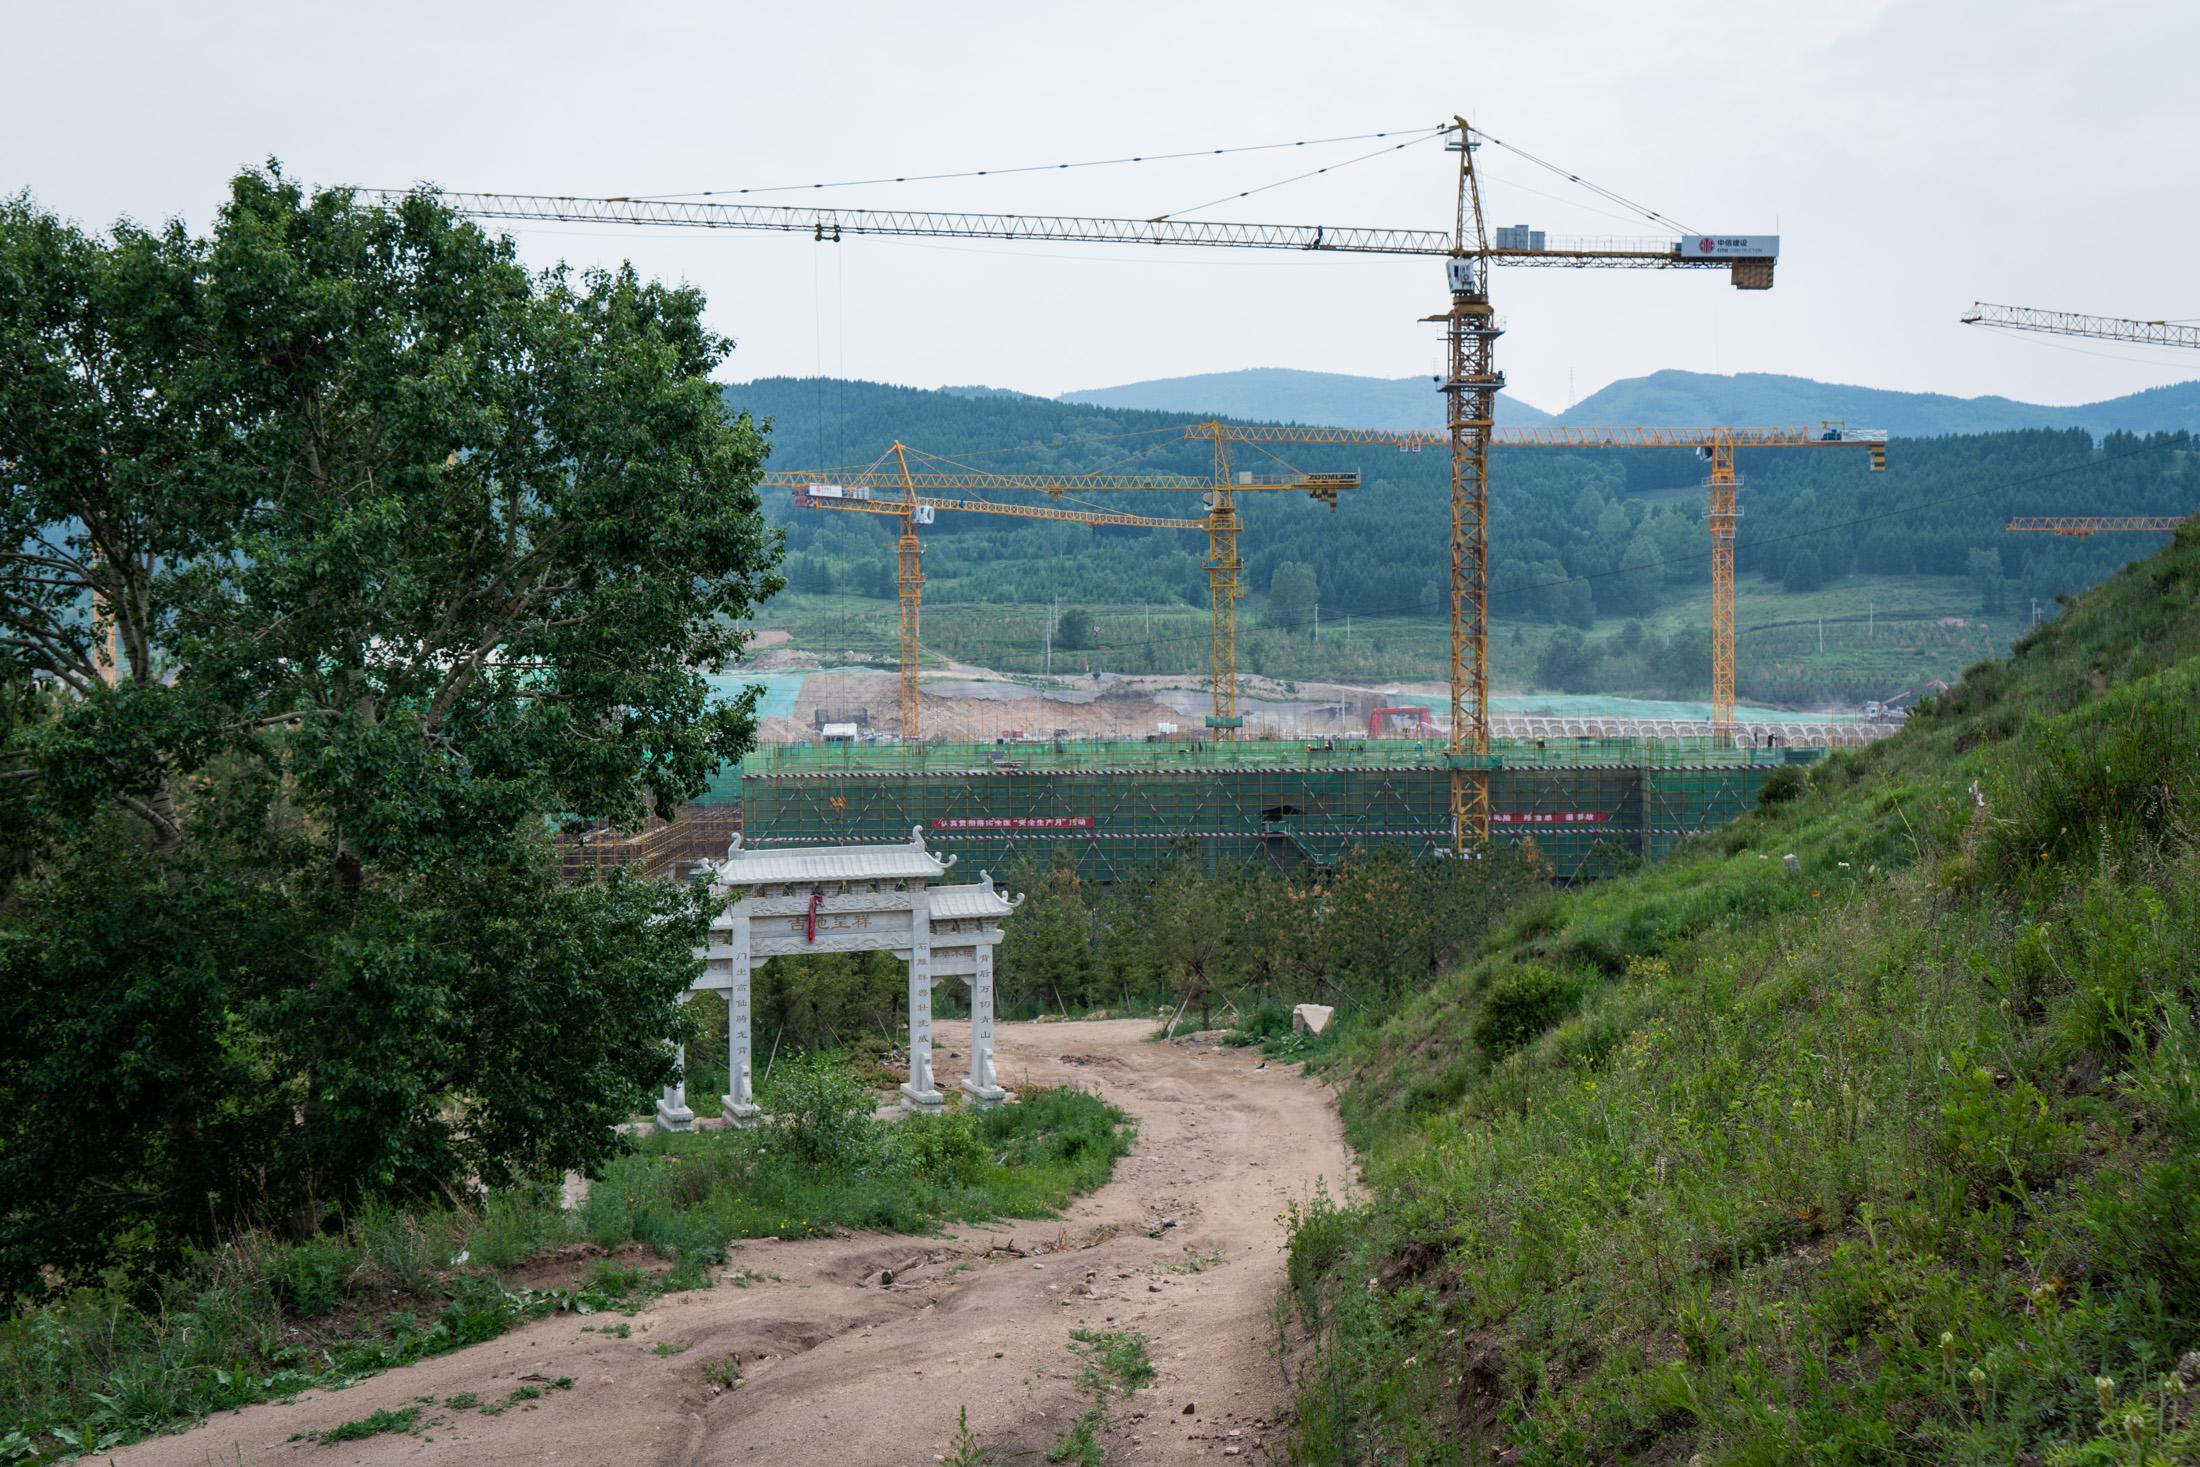 Taizicheng Ice and Snow Resort is under construction in the background, with a white archway for a cemetery seen in the foreground, June 2019.